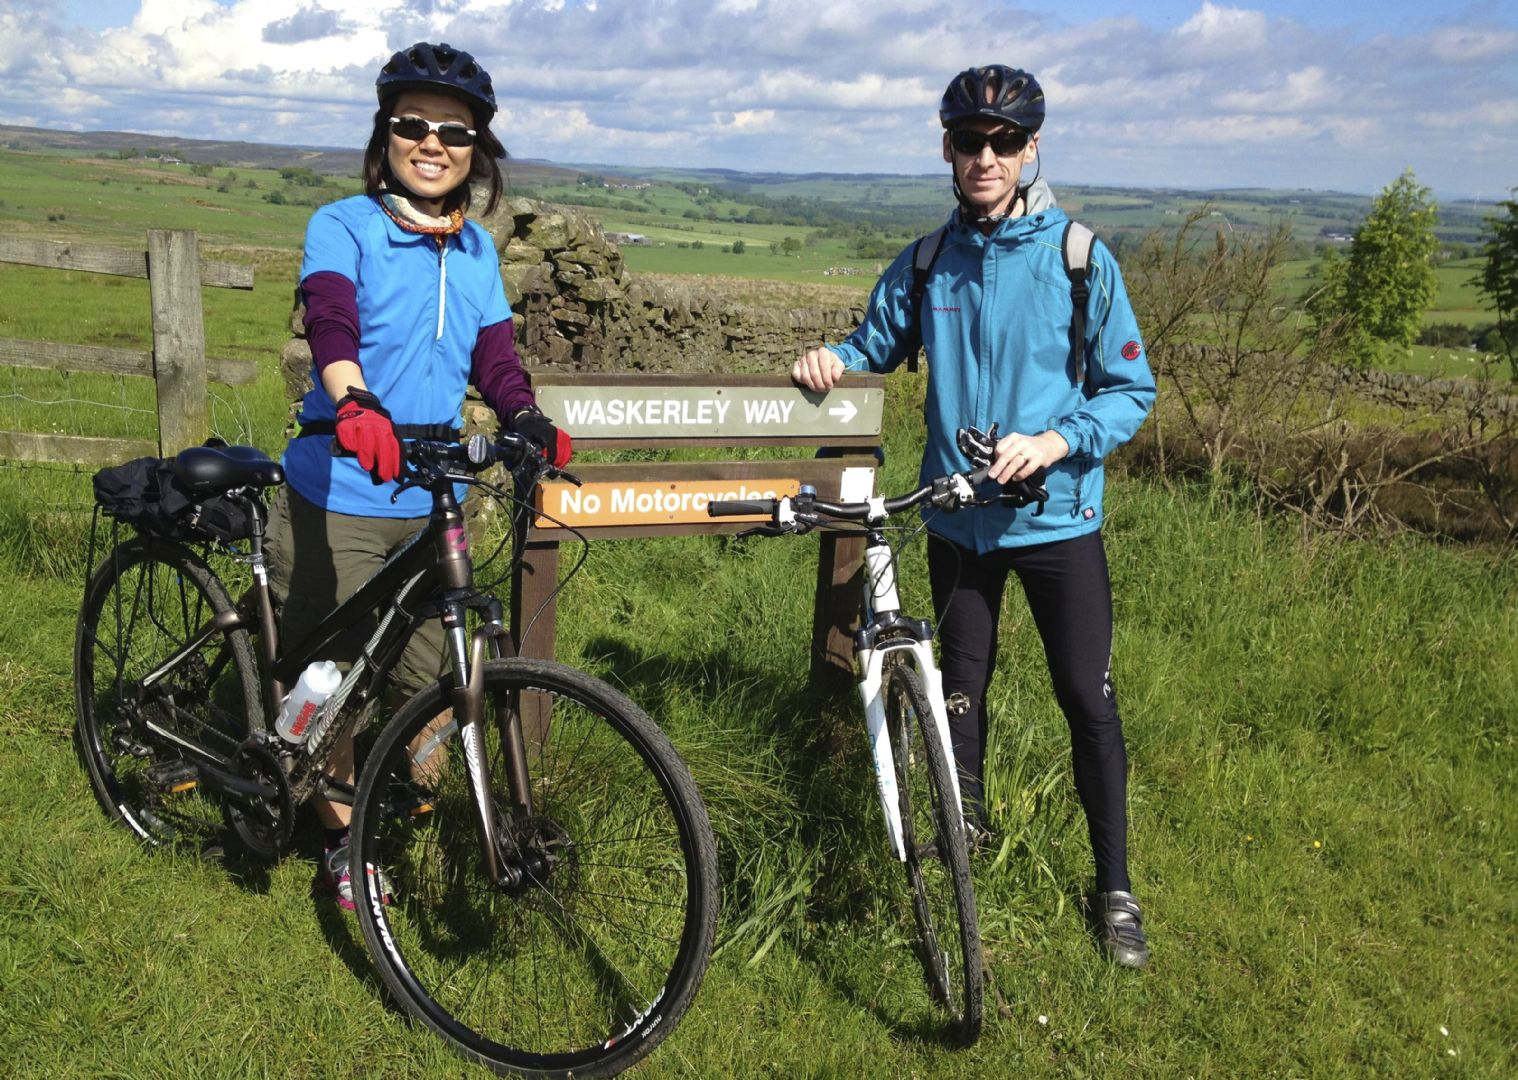 _Customer.103238.16258.jpg - UK - C2C - Coast to Coast 5 Days Cycling - Self-Guided Leisure Cycling Holiday - Leisure Cycling